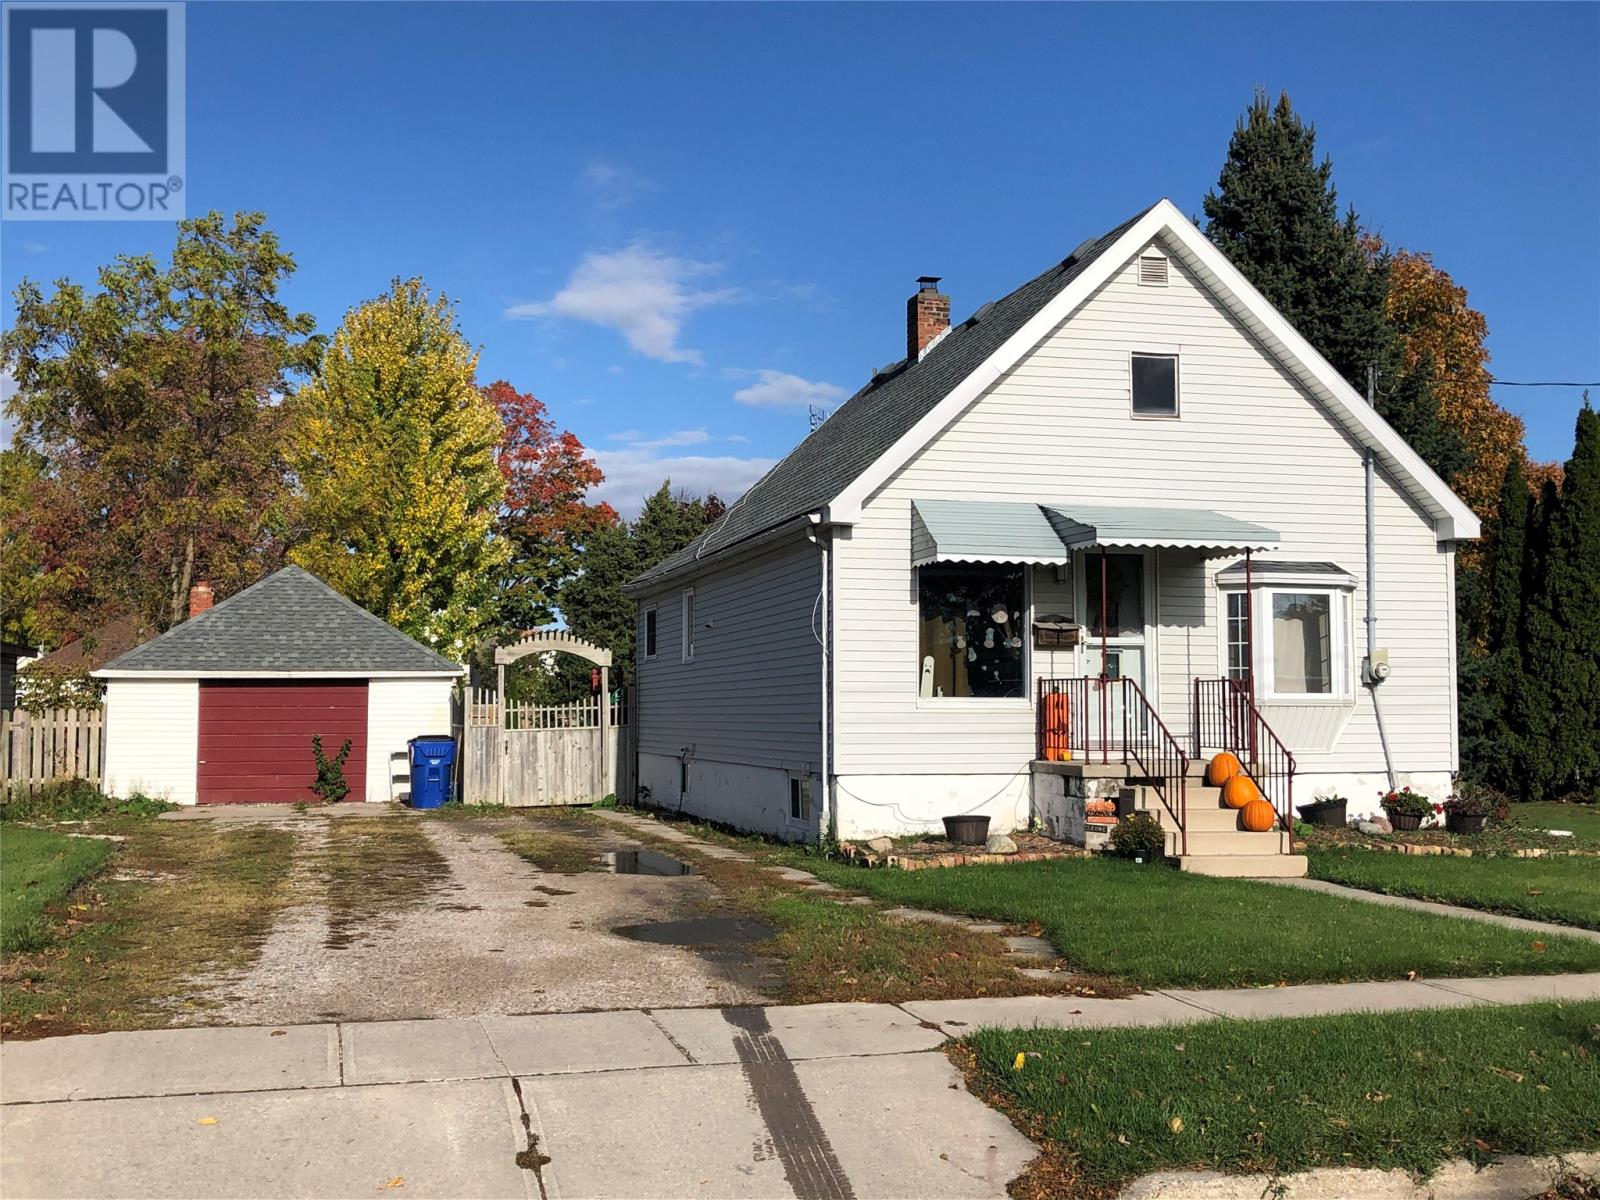 Removed: 133 Poplar Street, Chatham, ON - Removed on 2019-11-12 06:57:20